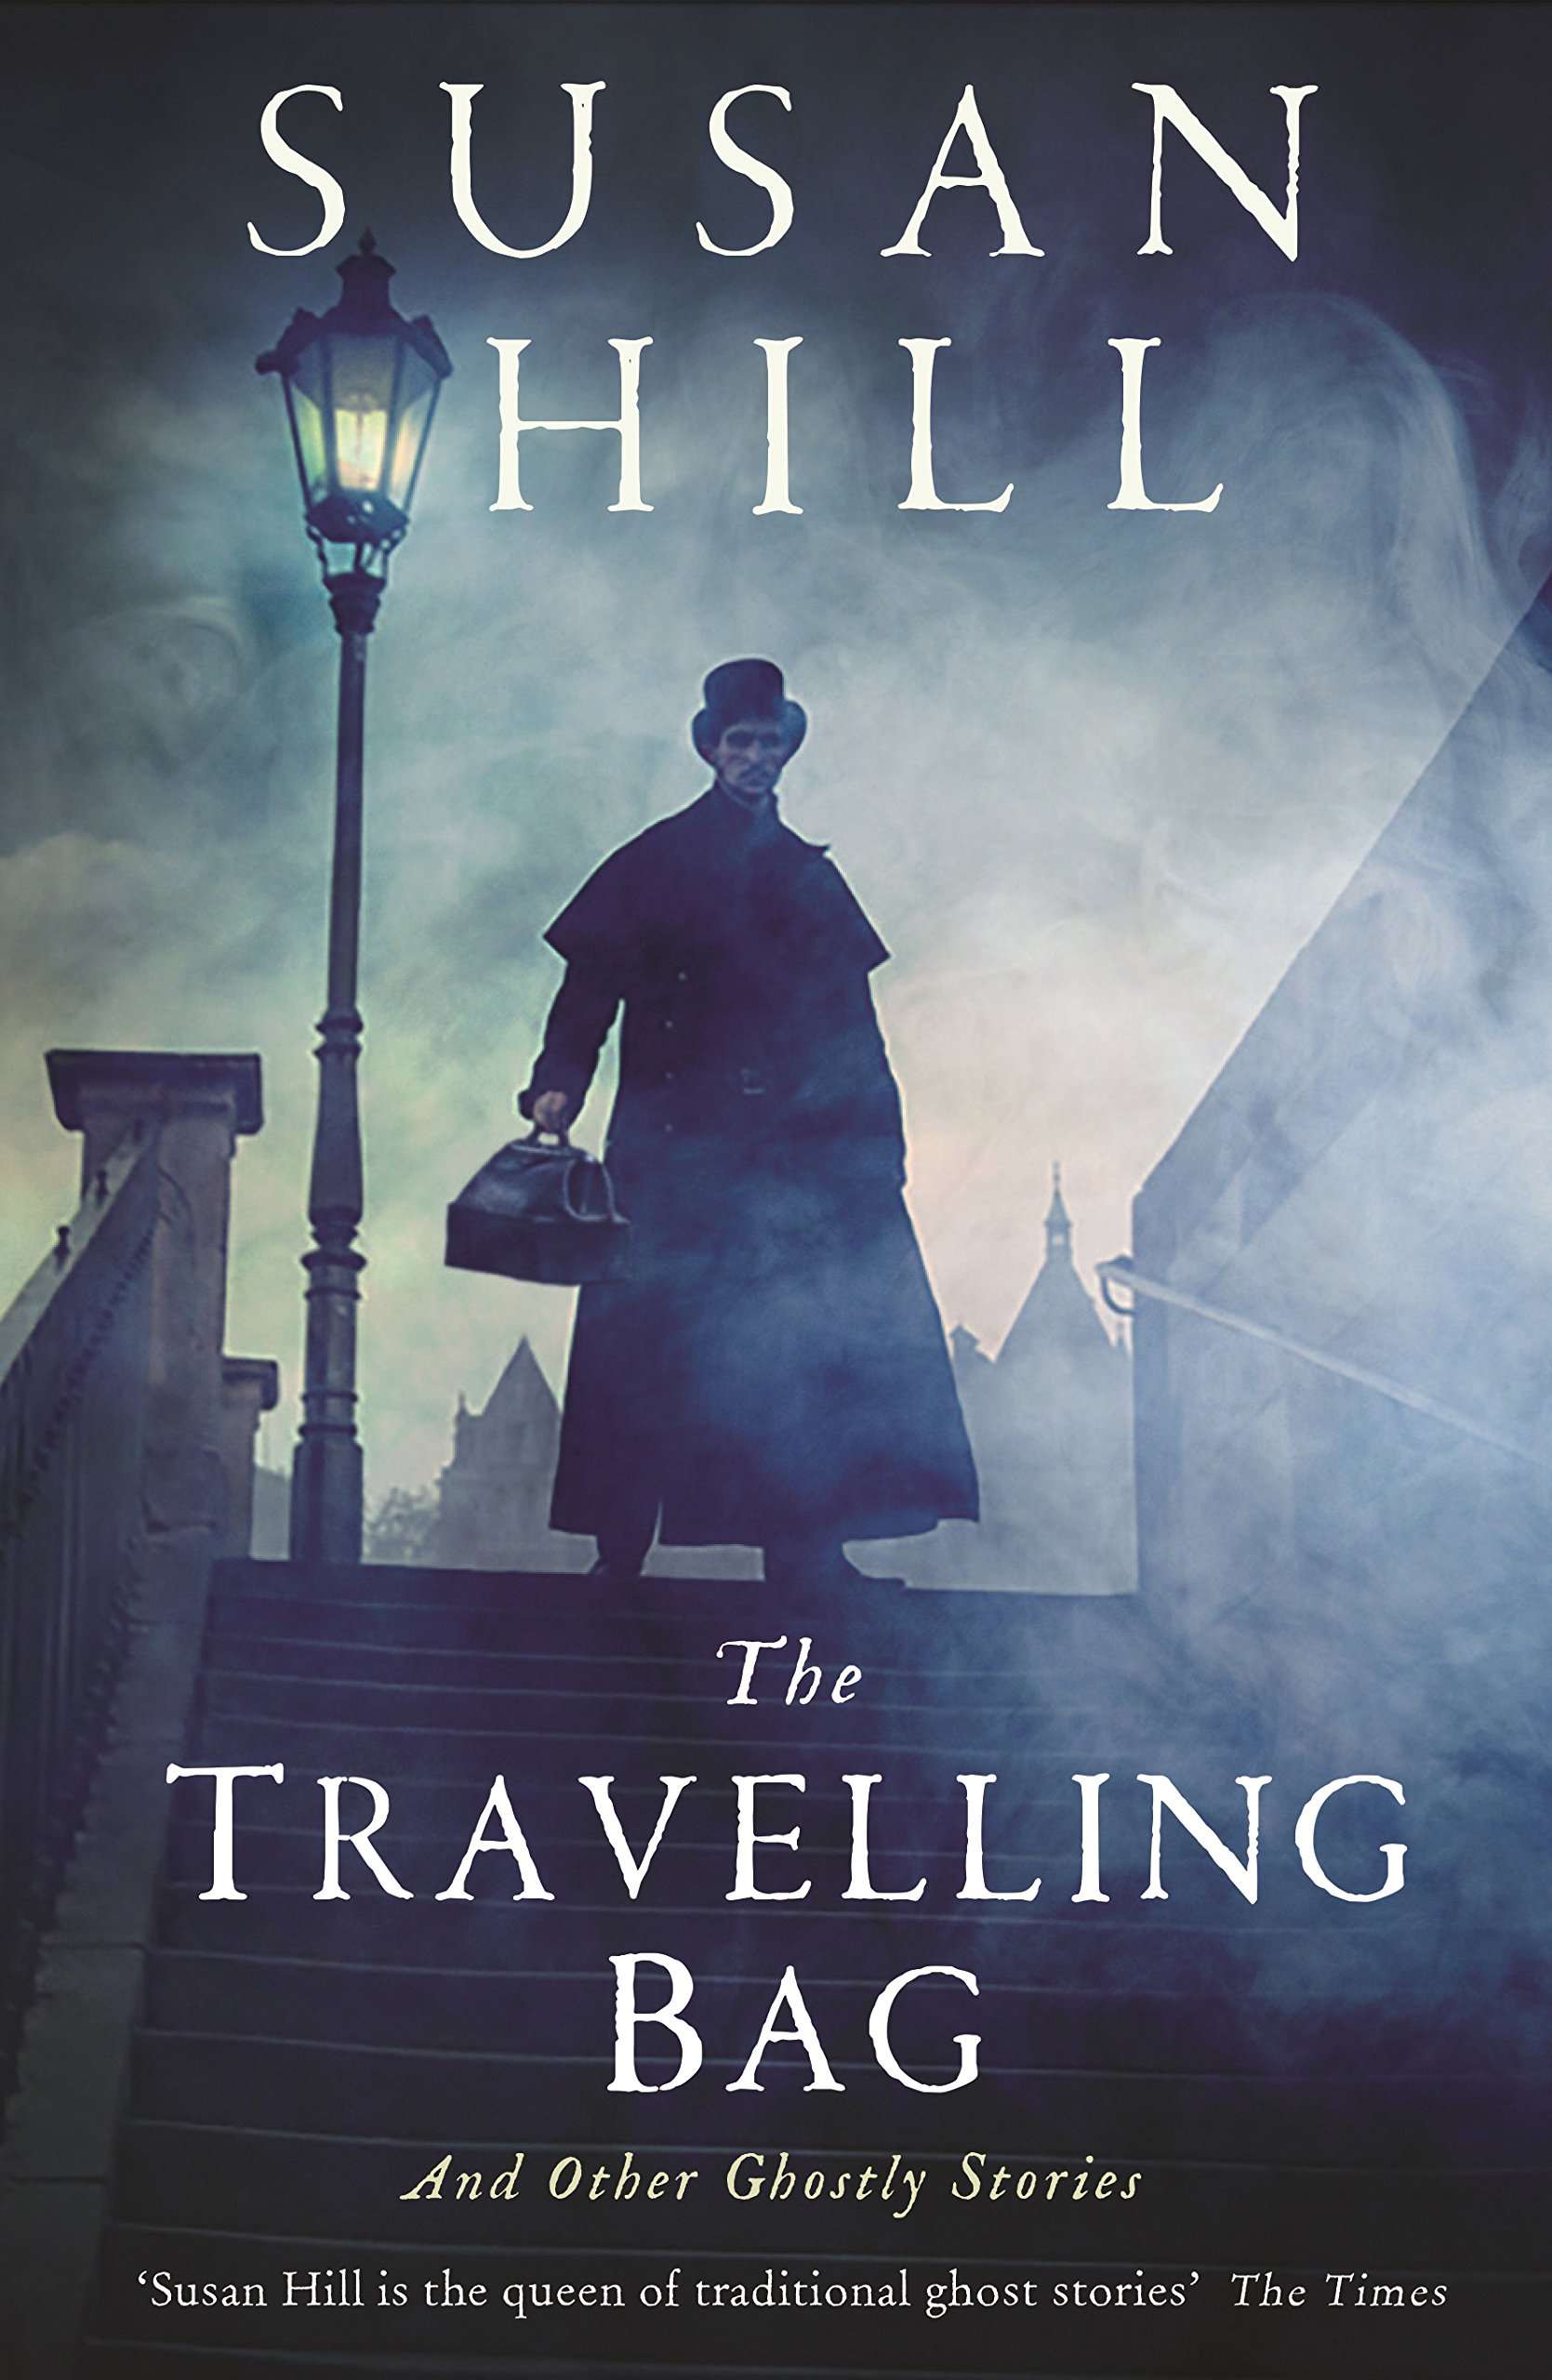 Image result for The Travelling Bag and Other Ghostly Stories by Susan hill